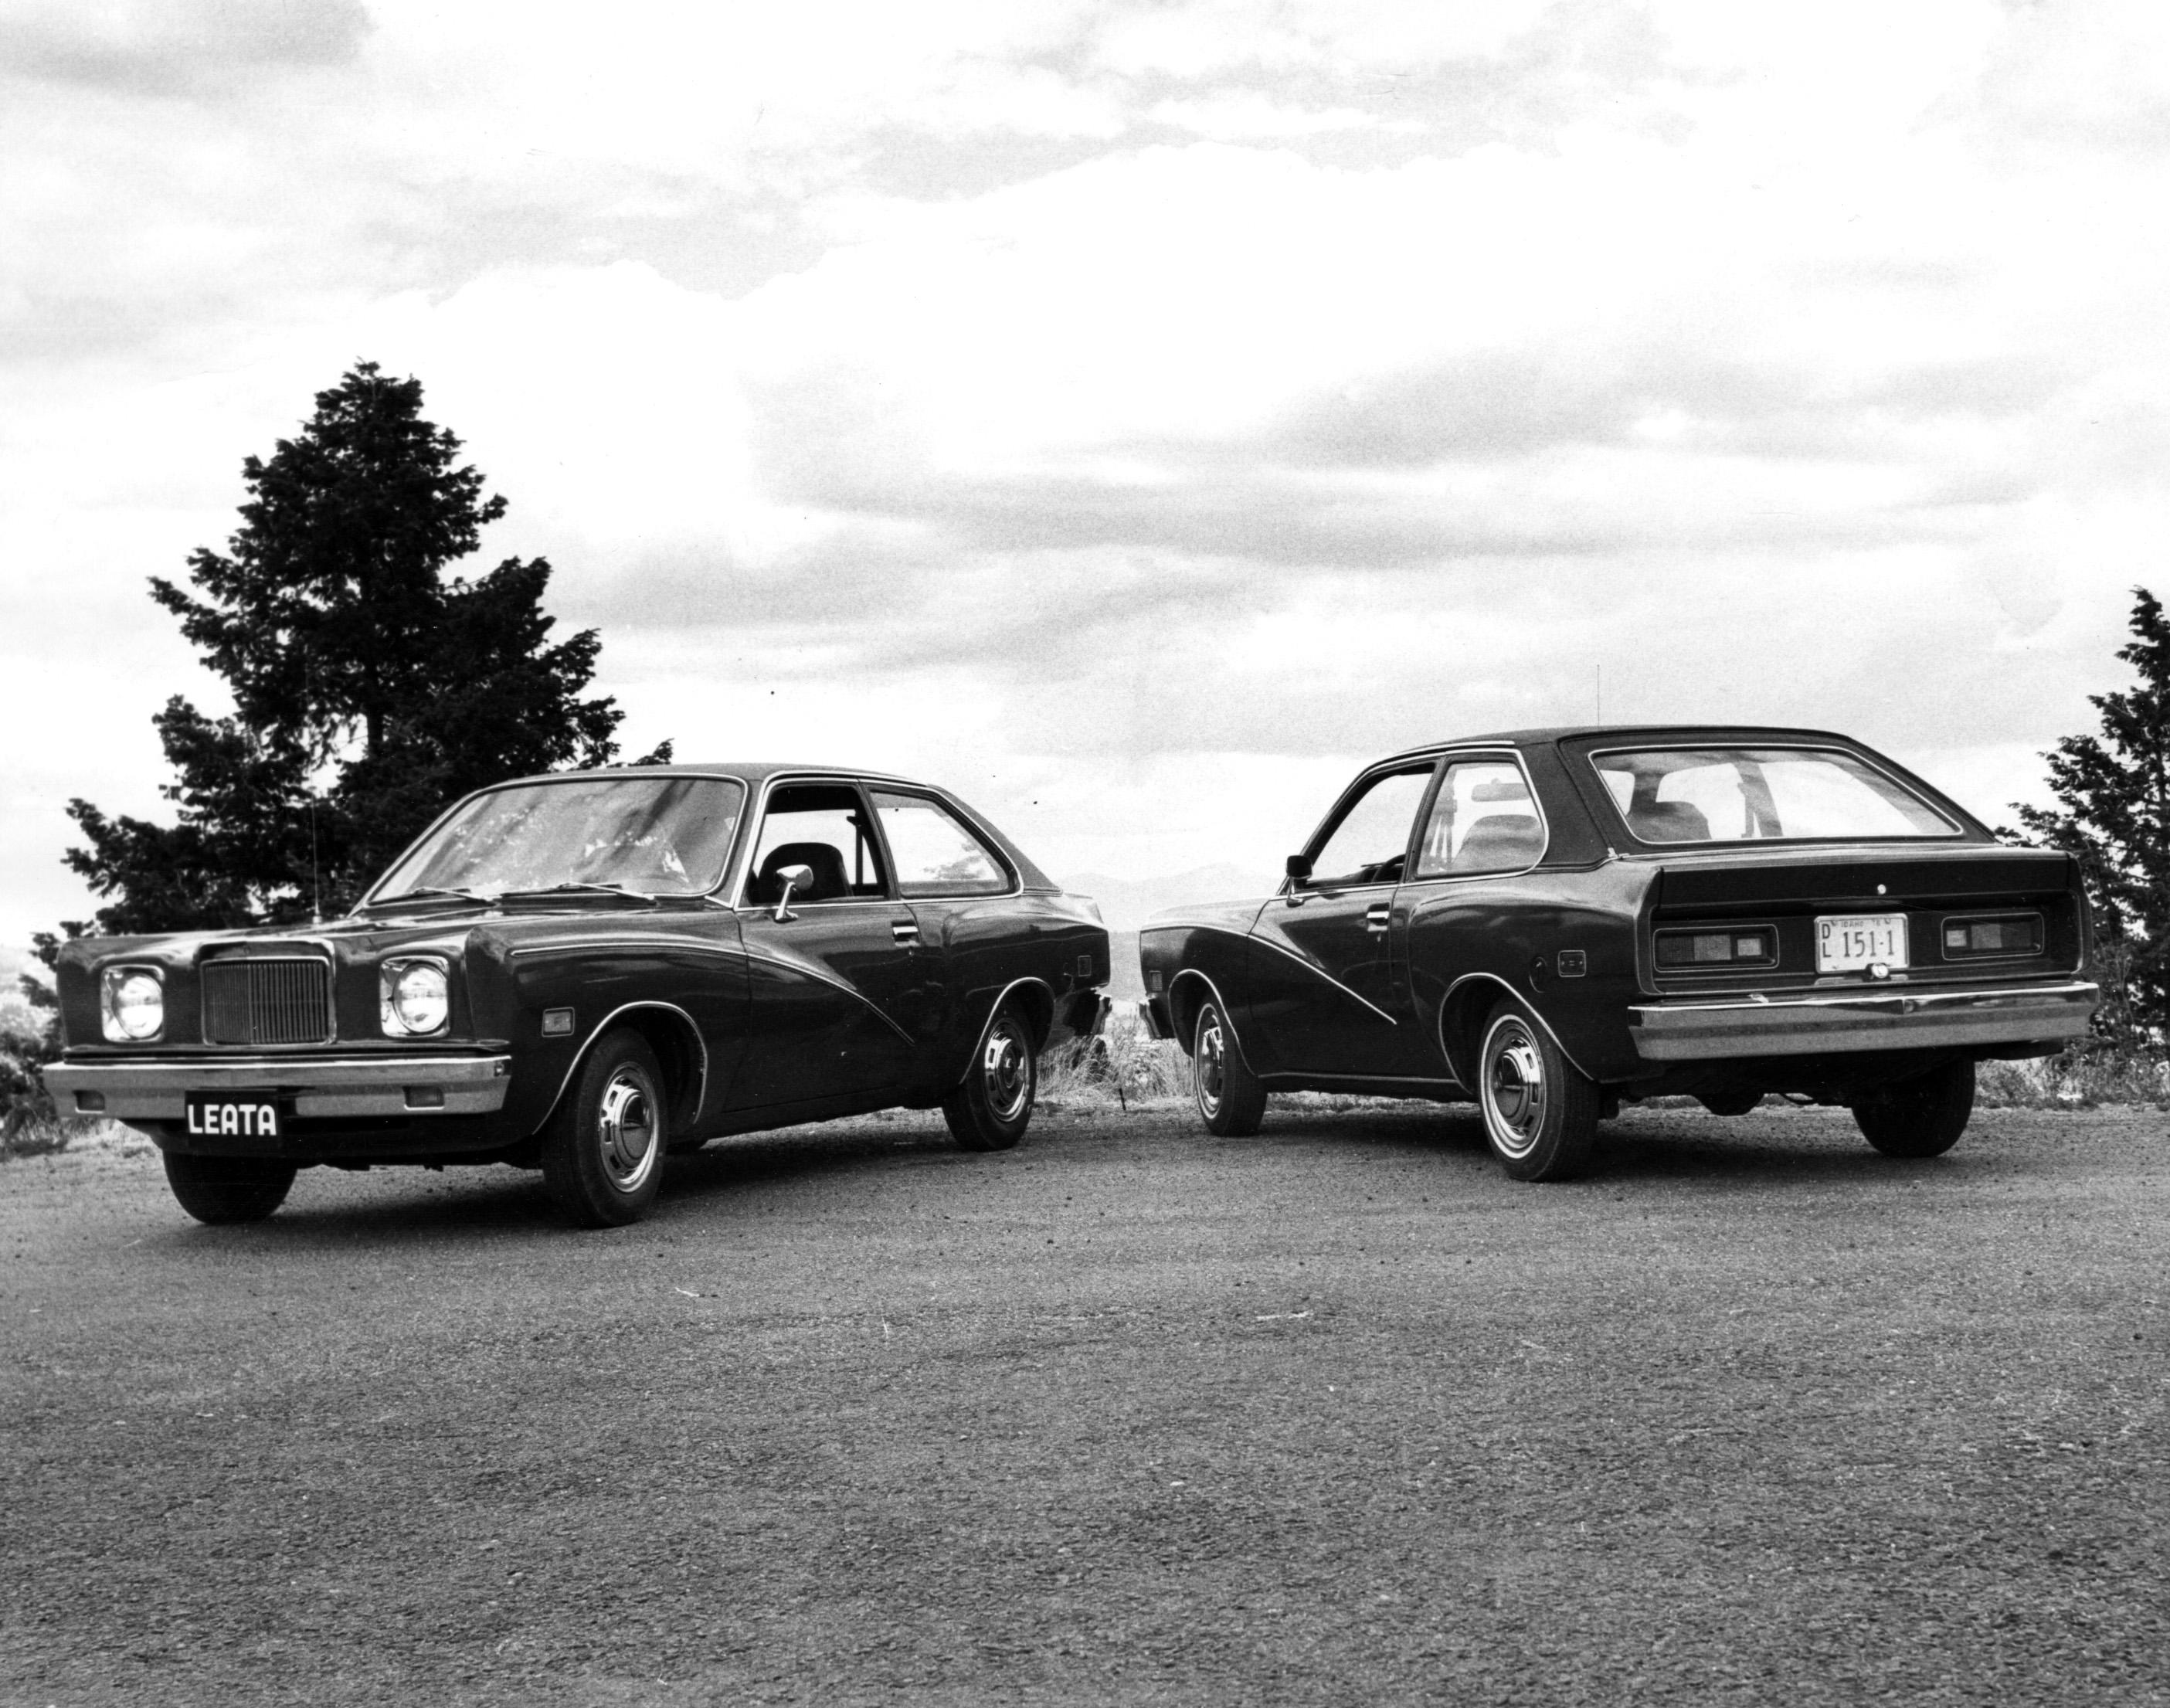 Random Car Review: The 1977 Leata Cabalero and Cabalero Pickup, Better Known As Just How Far You Can Go With A Chevette